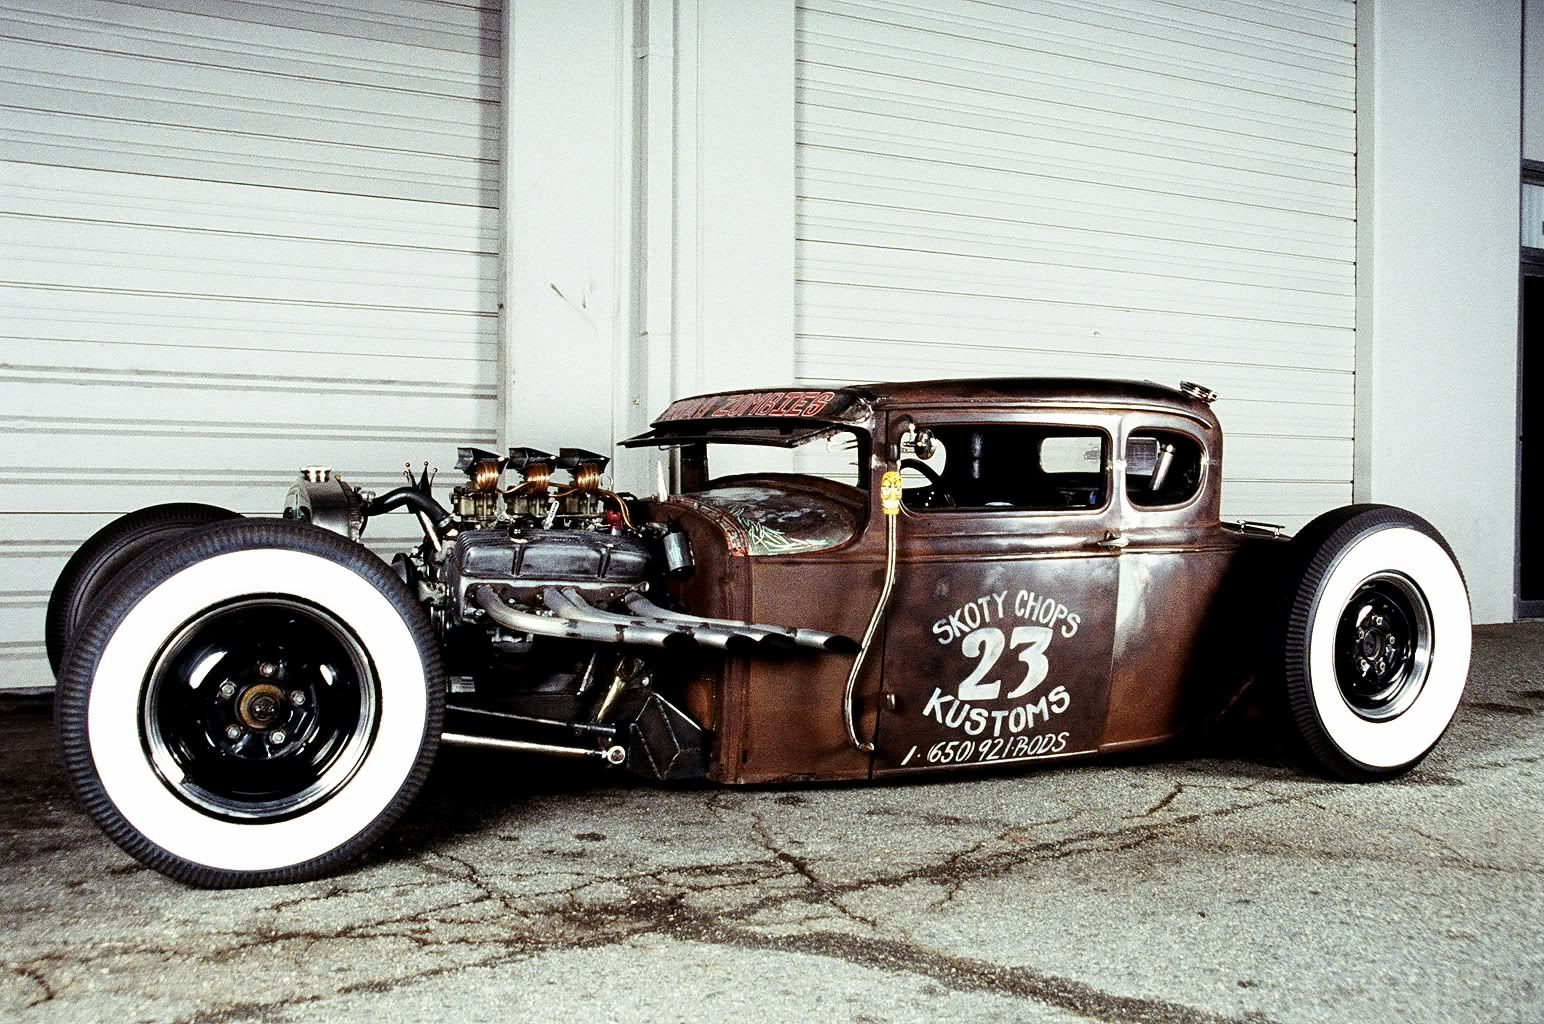 scotty chops rat rod with a suicide shifter on the outside of the car